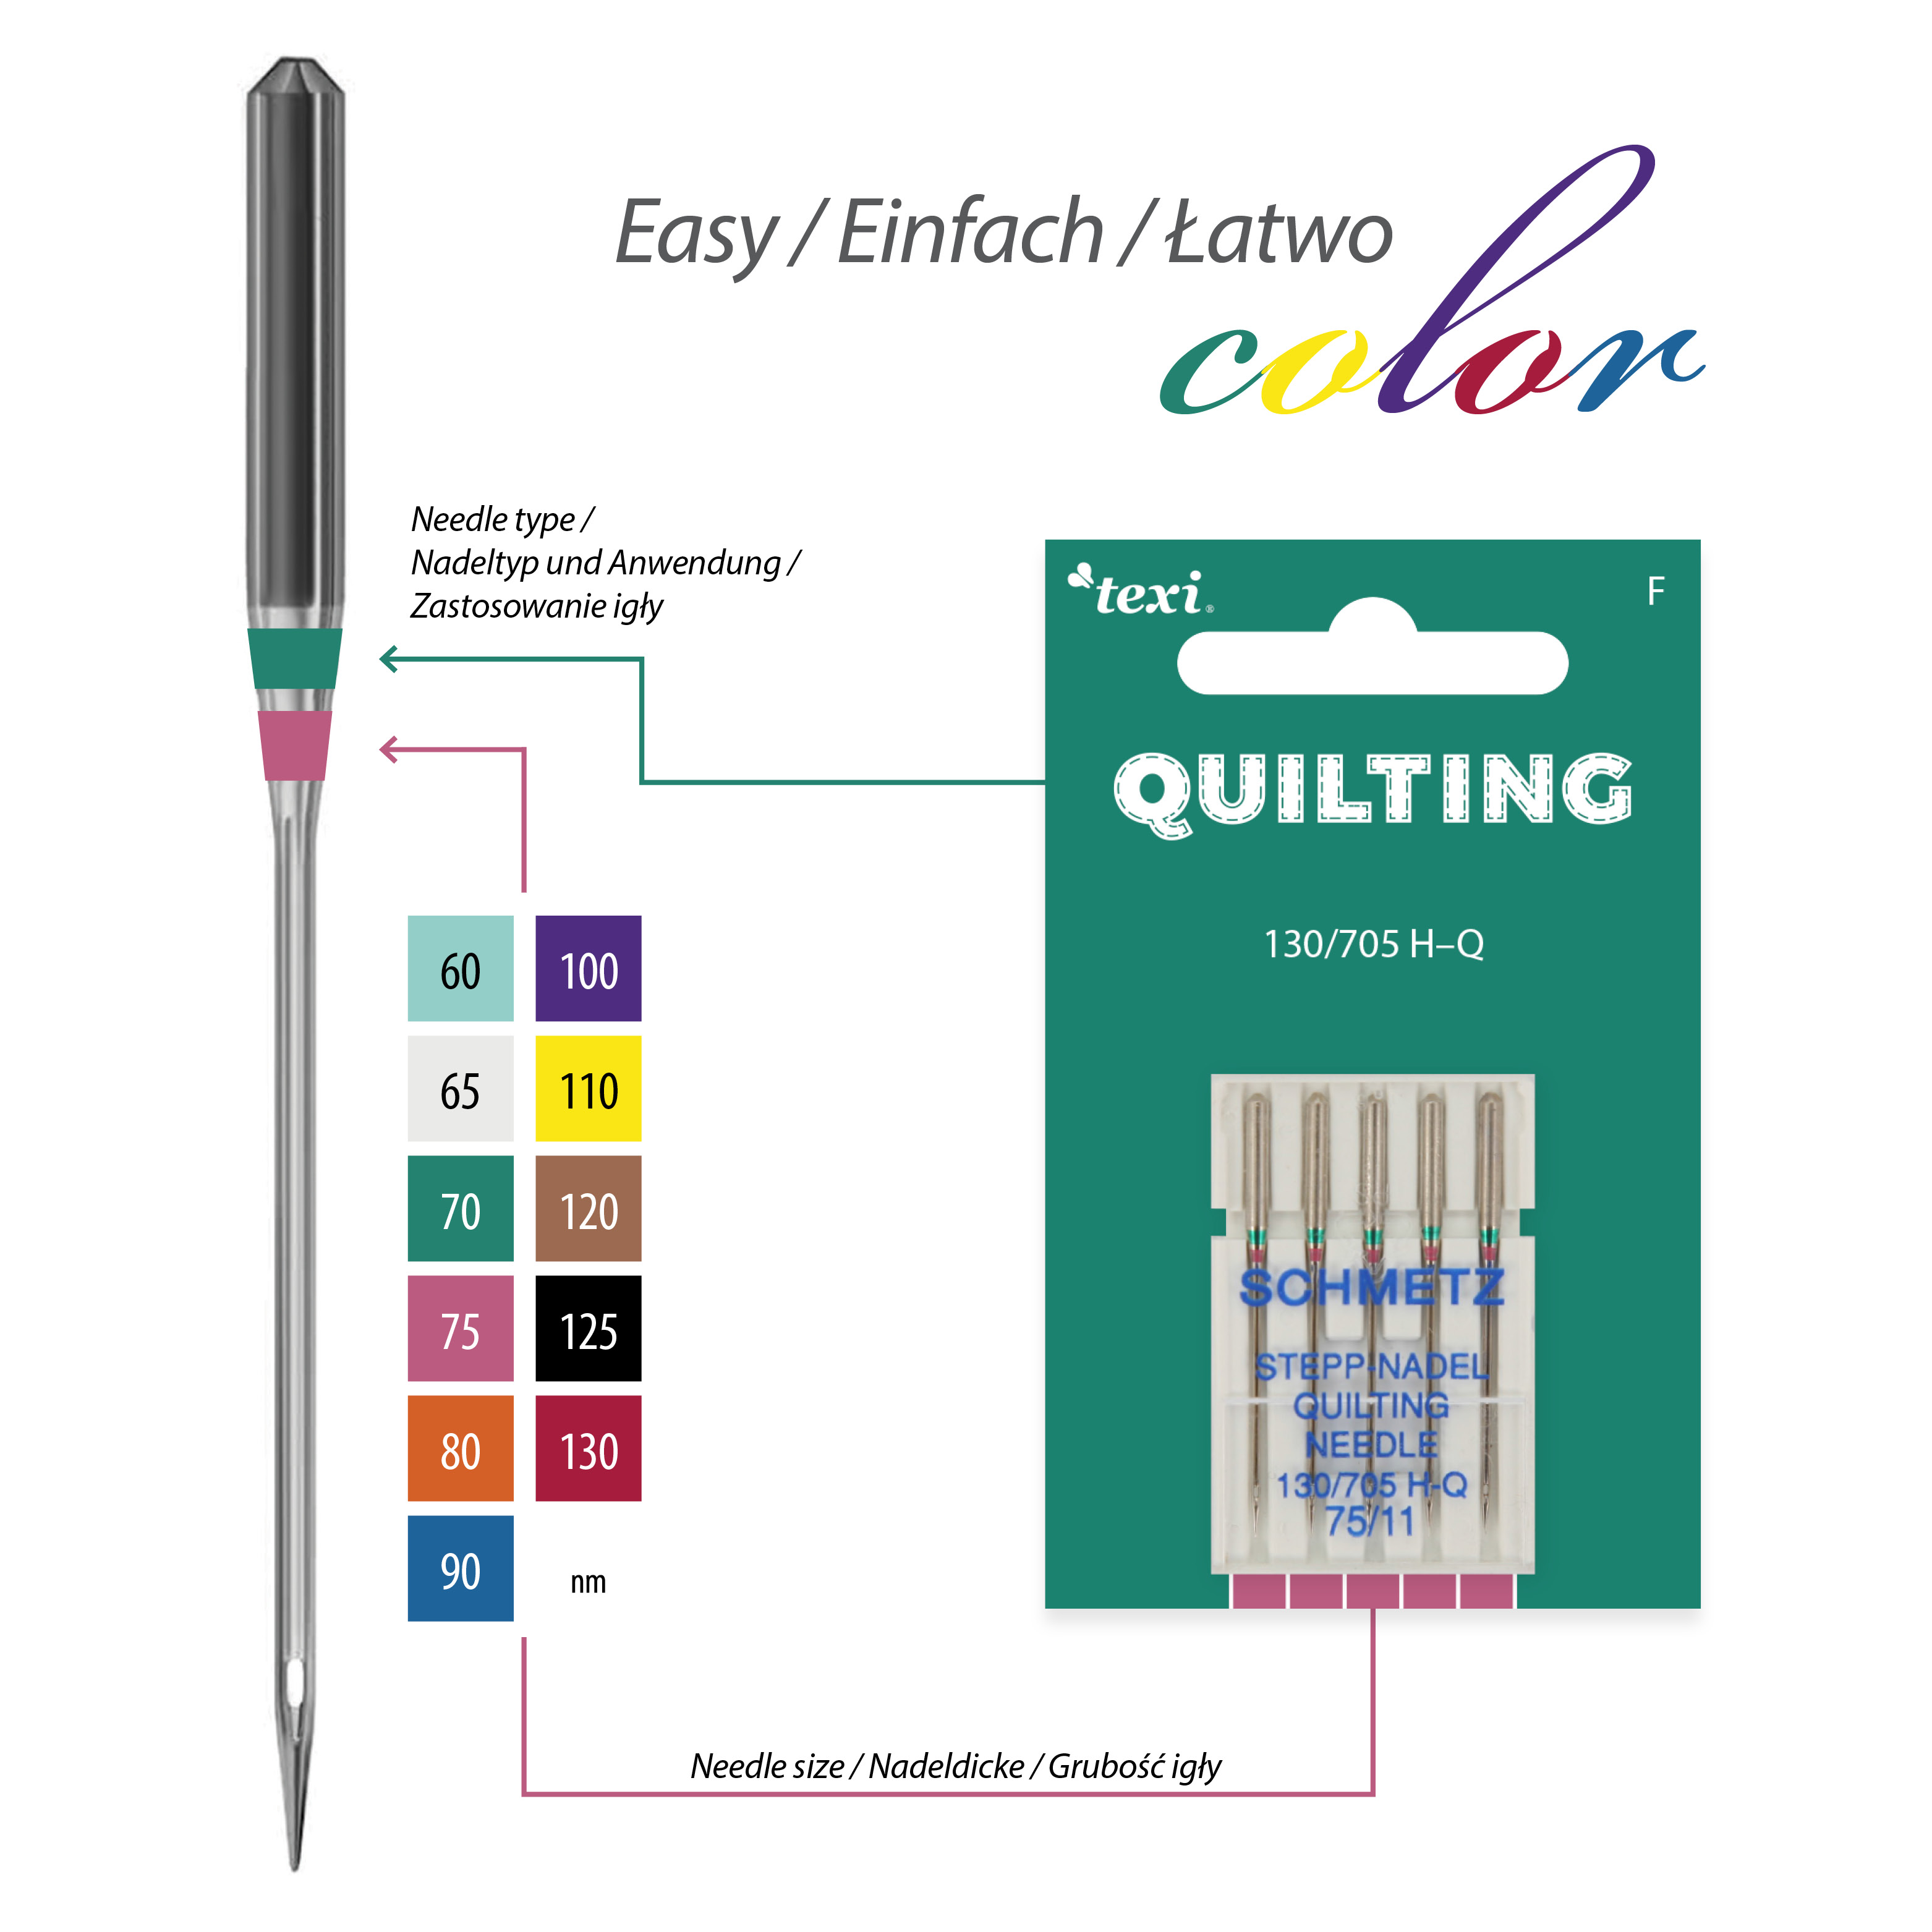 Quilting needles for household machines, 5 pcs, size 75 - TEXI QUILTING 130/705 H-Q 5x75